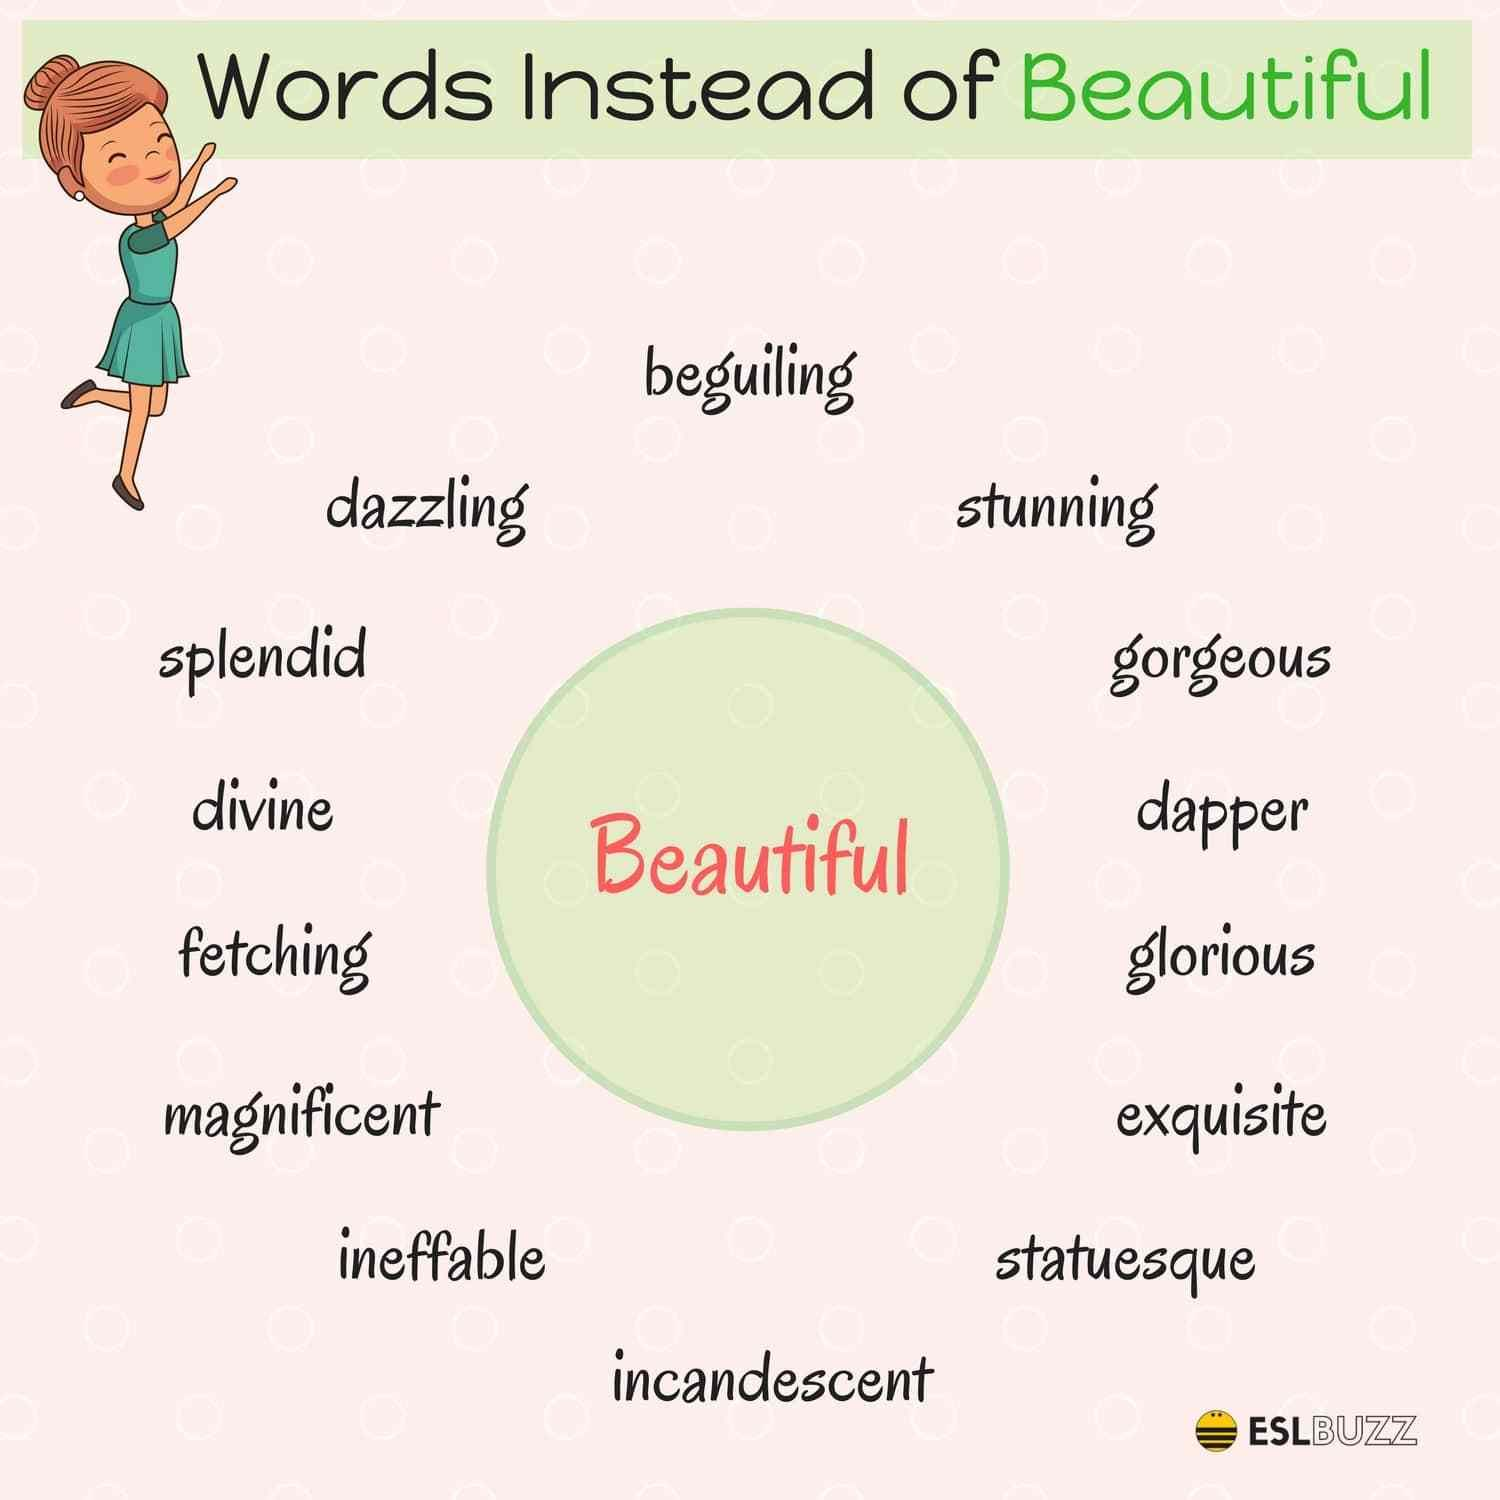 Different languages to say beautiful